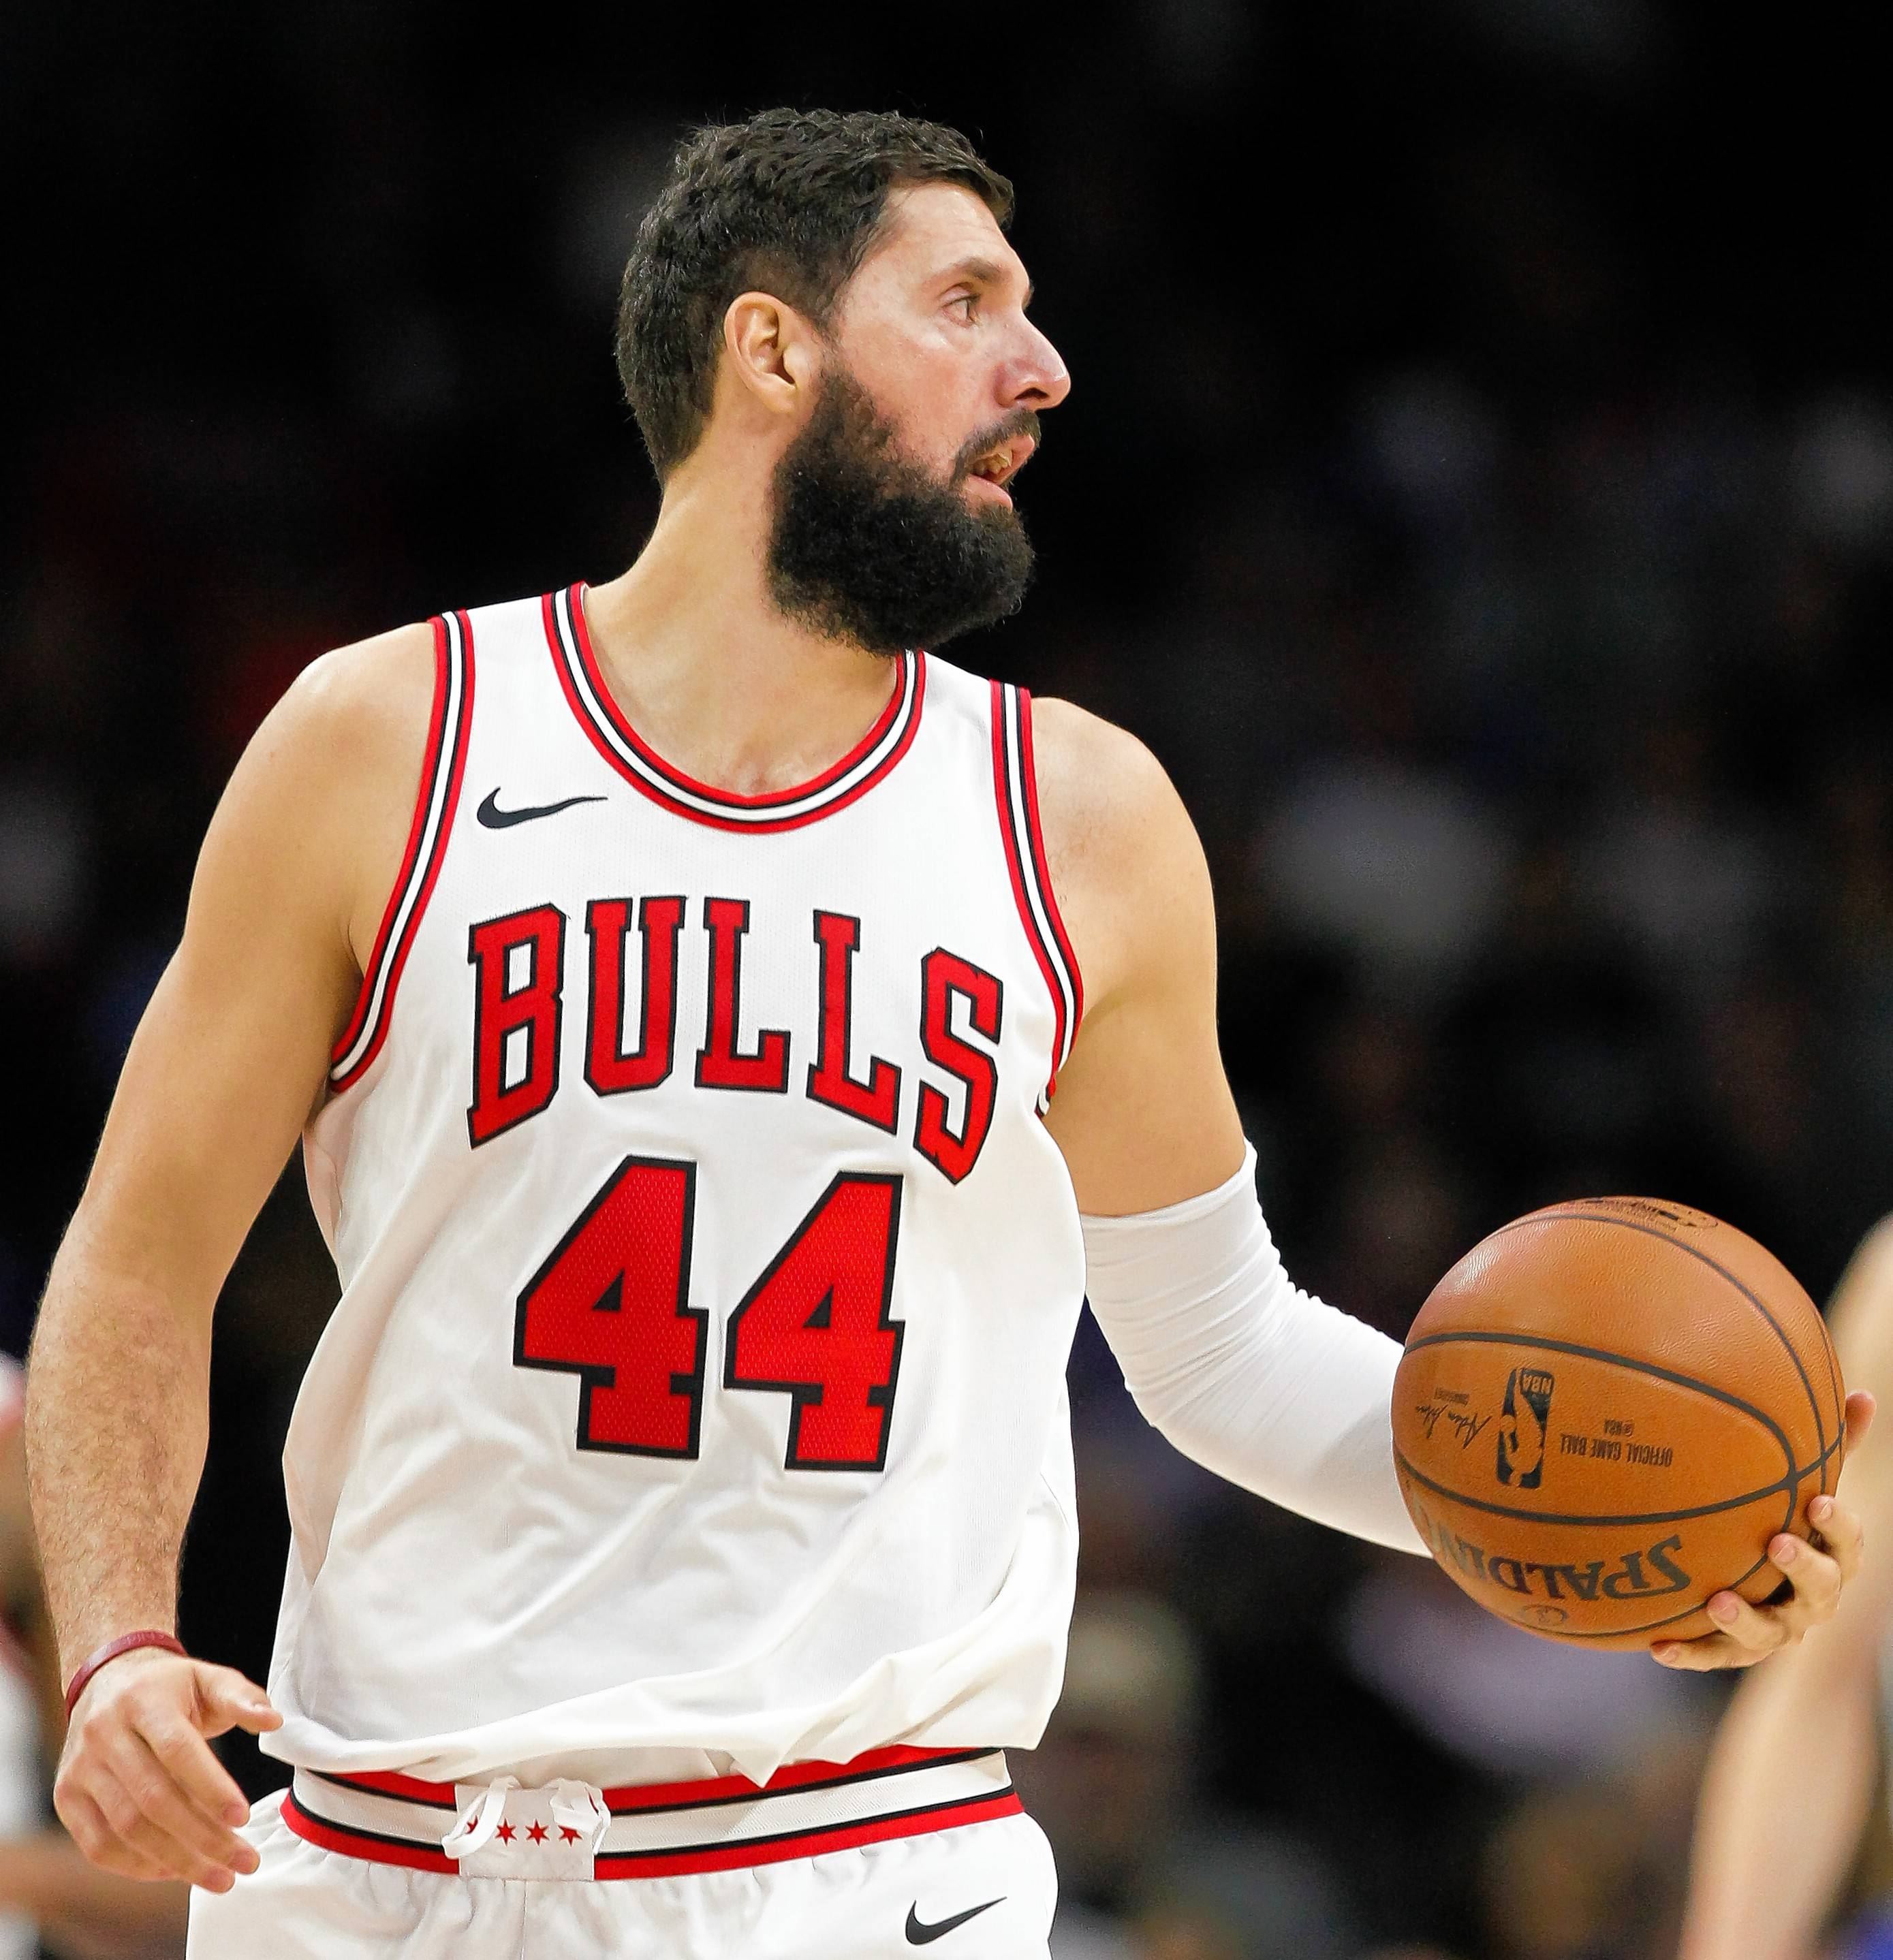 Will Chicago Bulls forward Nikola Mirotic be traded before the Feb. 8 NBA trade deadline? A deal with New Orleans reportedly has fallen through.